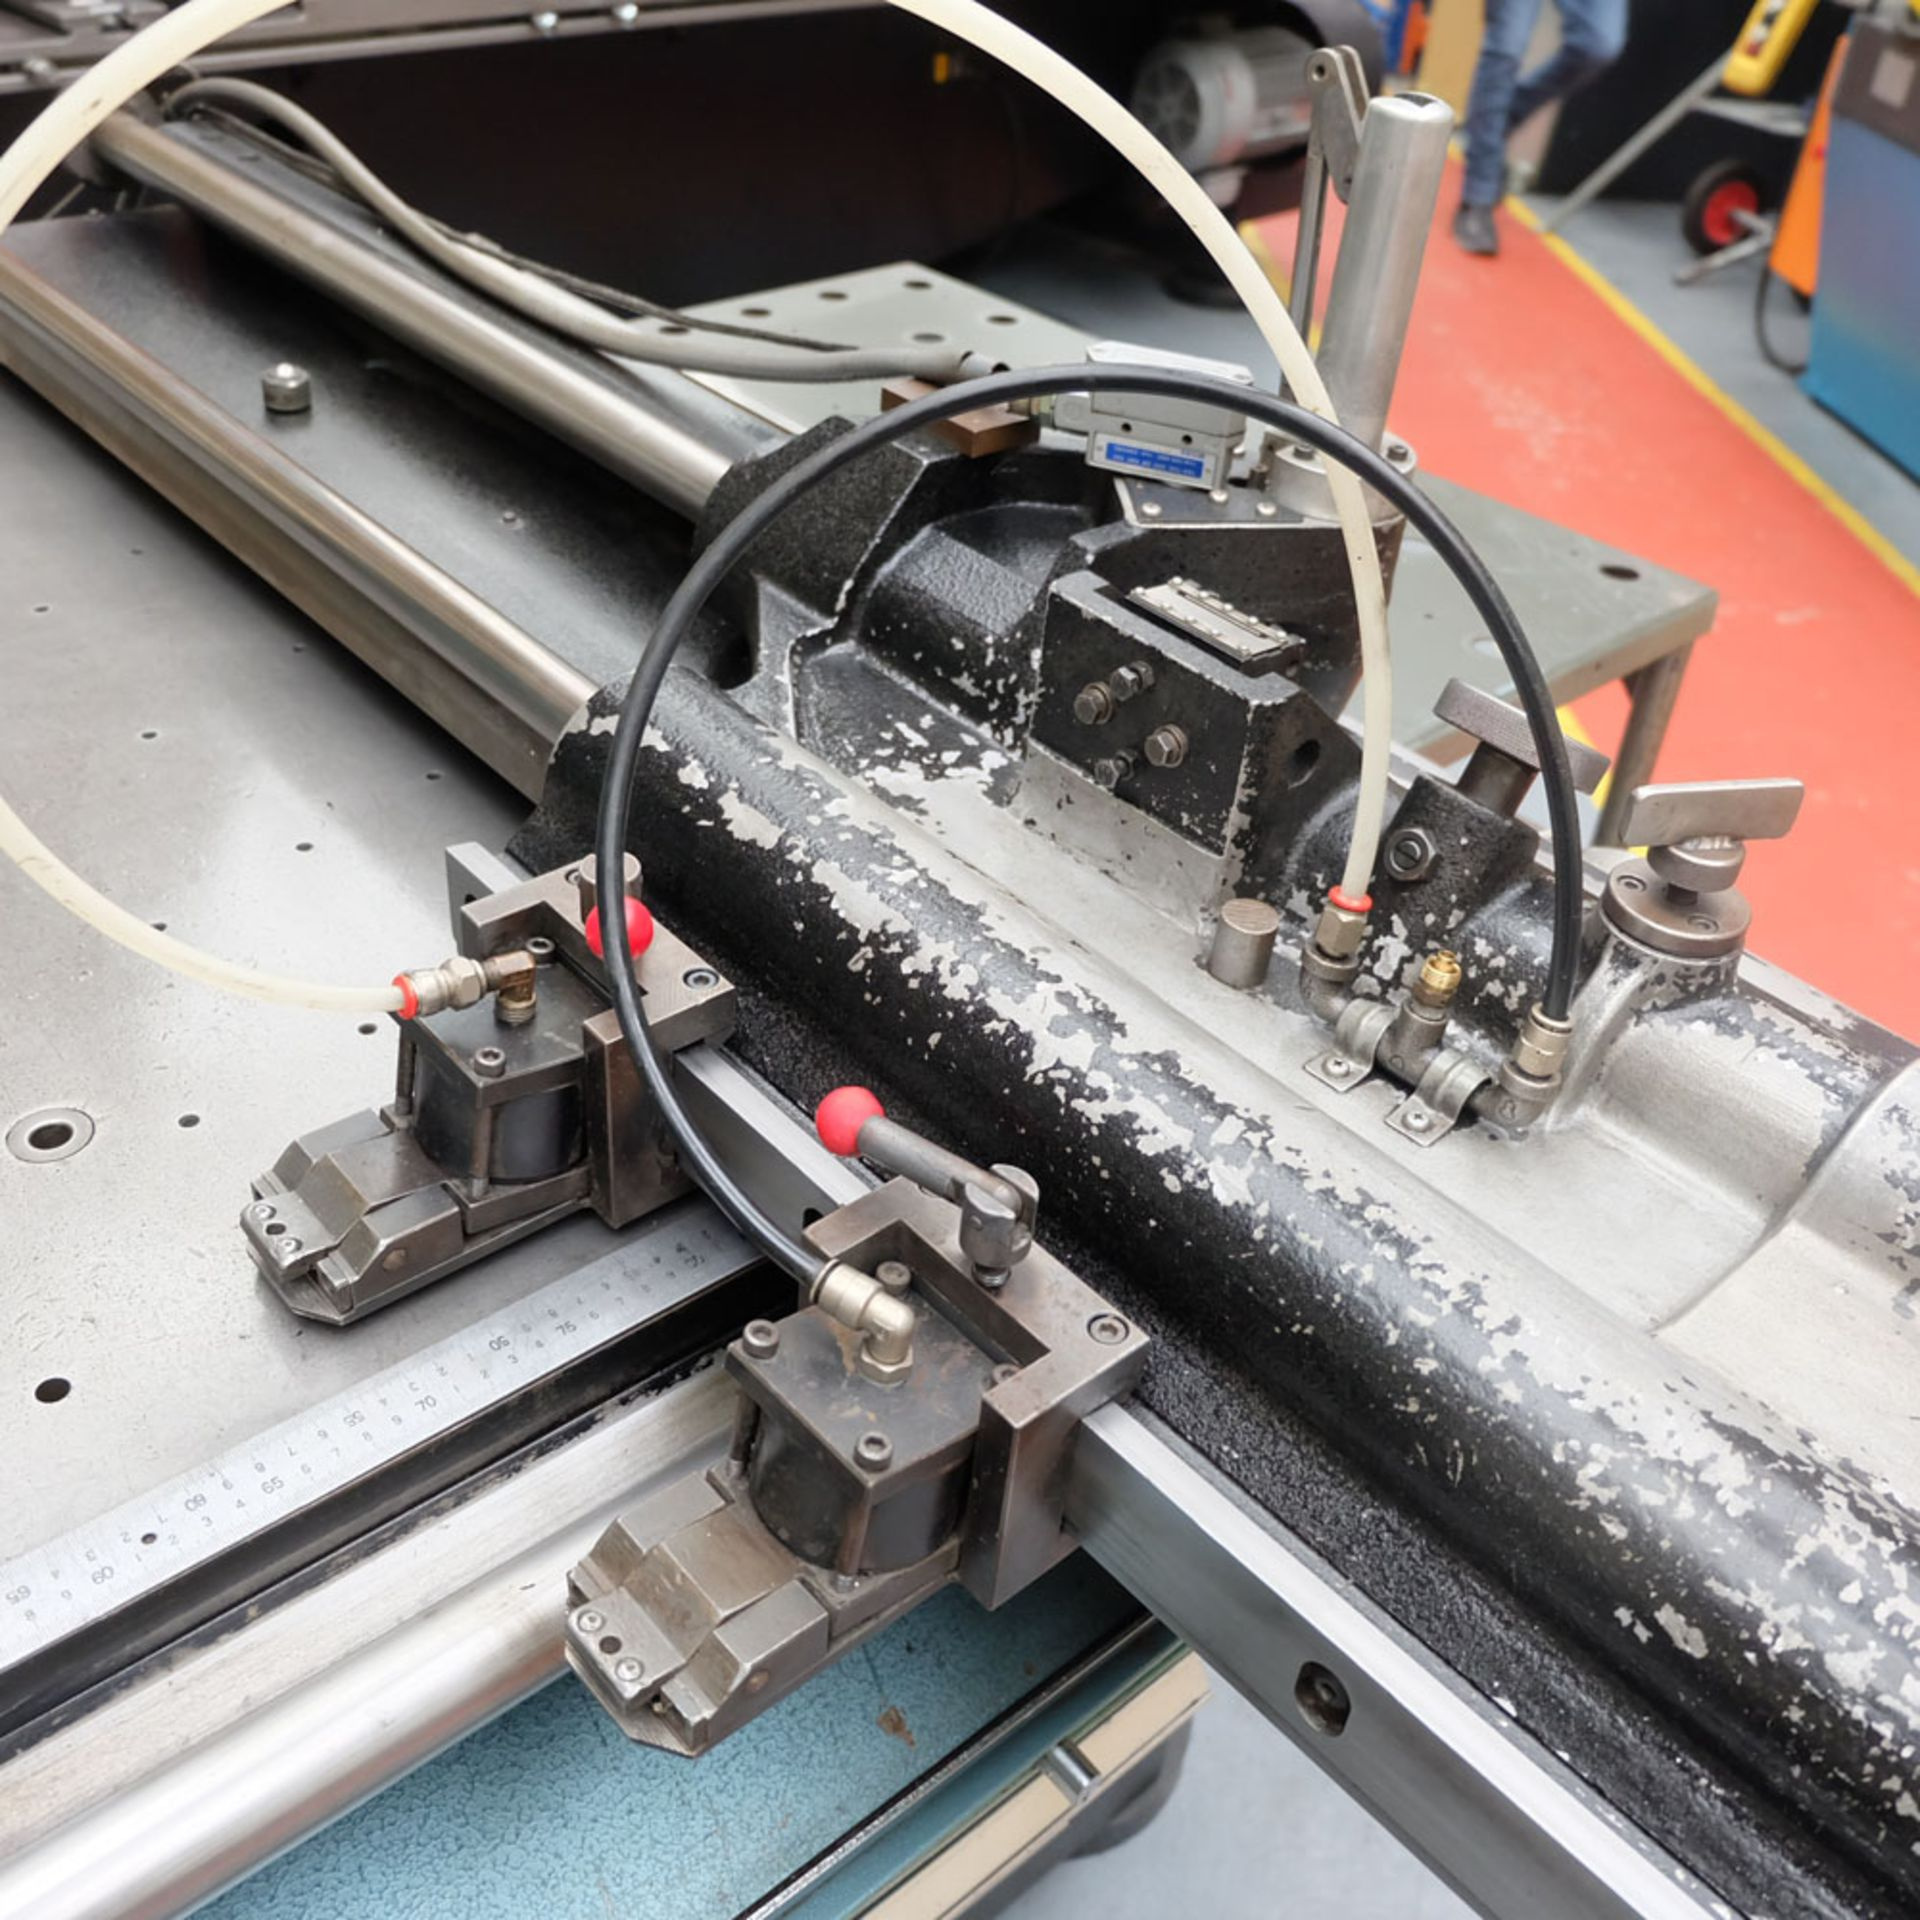 Amada D-750 Duplicator Punching Machine with Tooling and Digital Readout. - Image 4 of 8